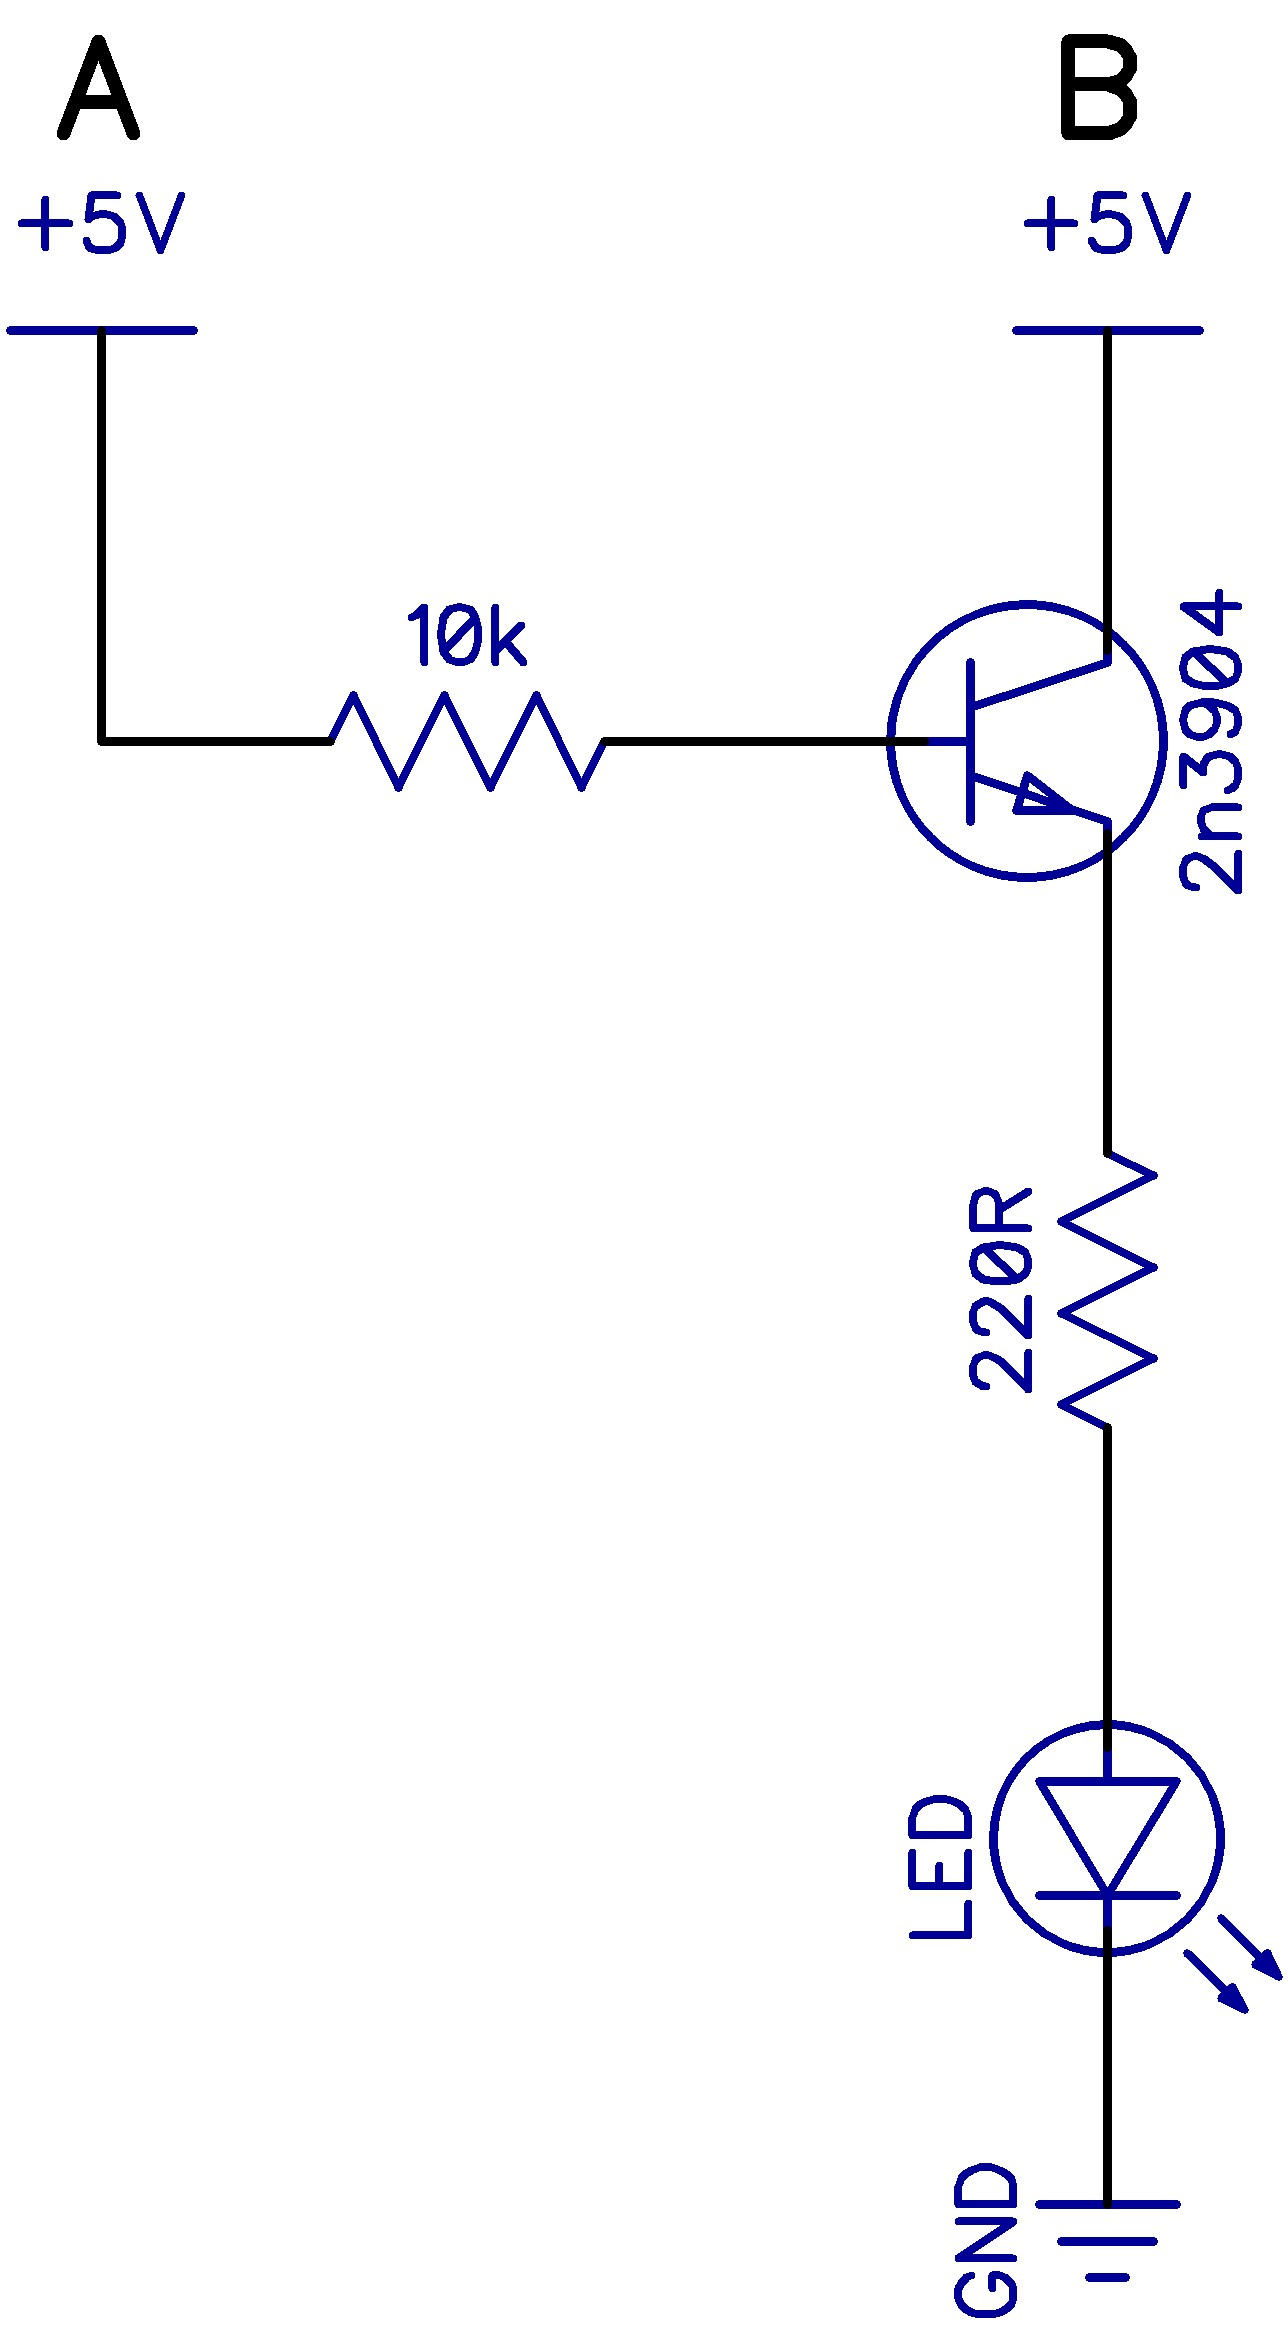 4 Npn Transistors Tech Gp Vanier Transistor Diagram Why Does The Base Have A 10k Resistor But Emitter And Led 220